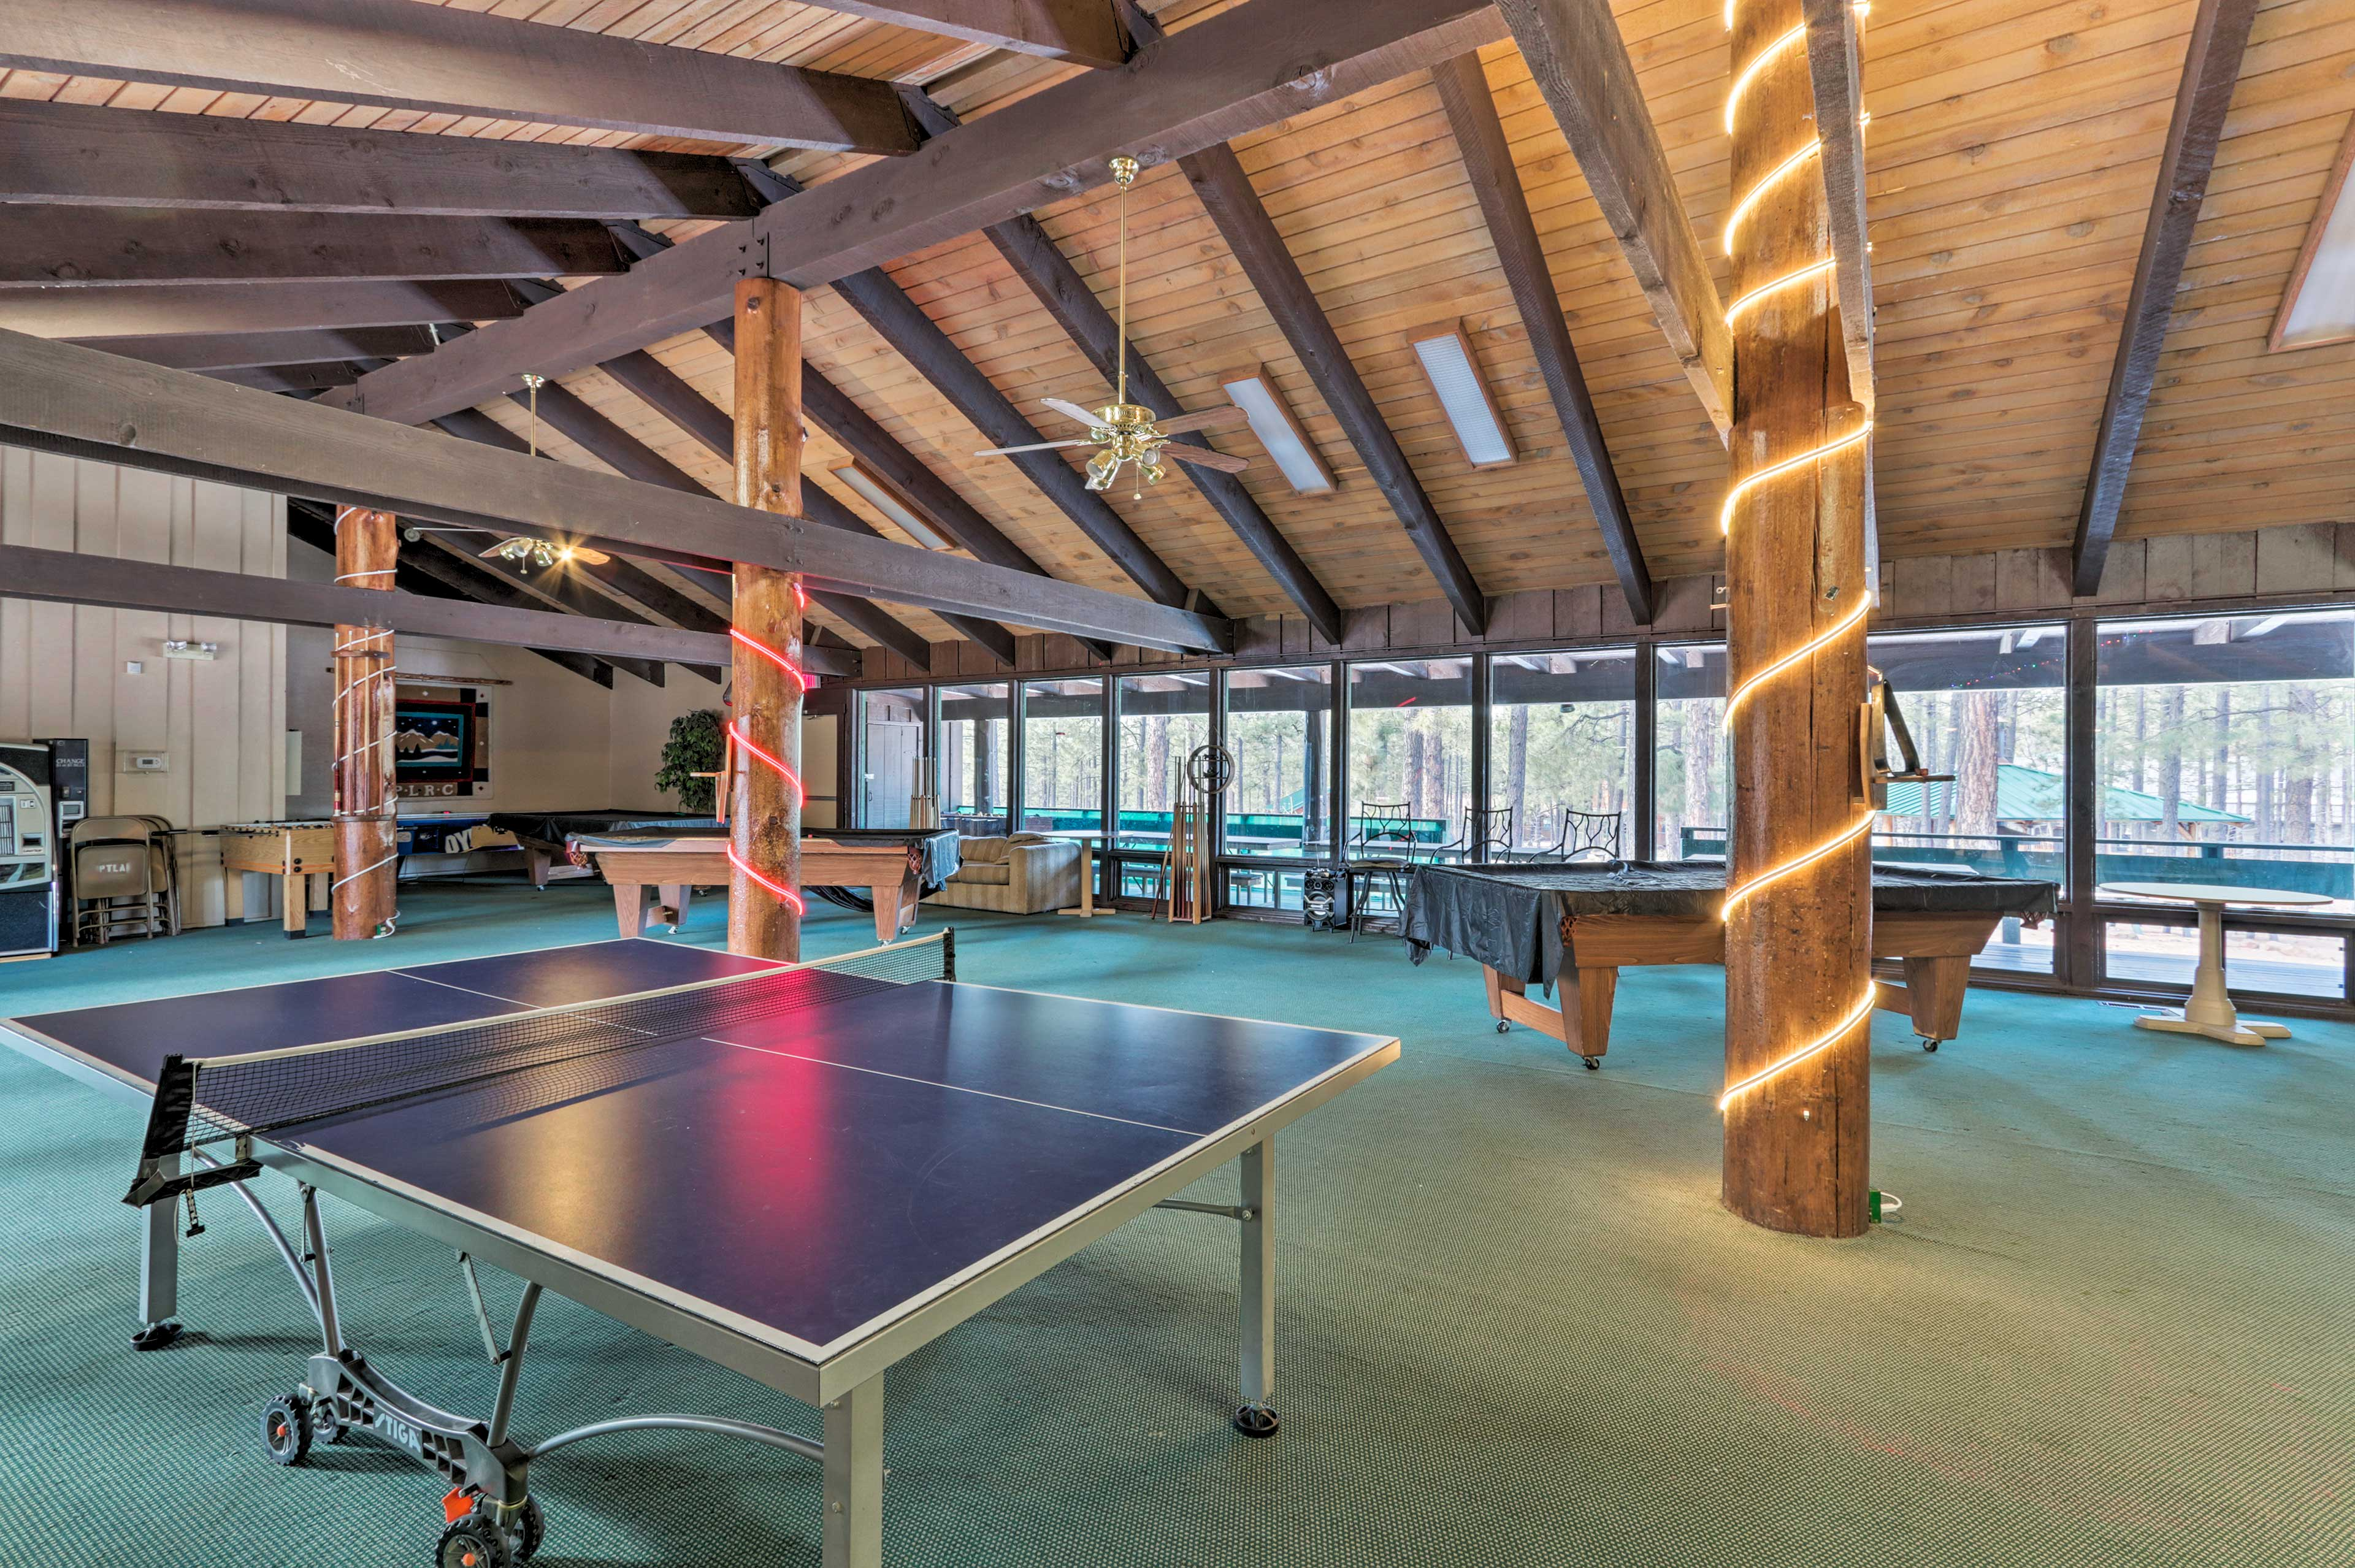 Inside, find ping pong, pool tables and panoramic views.